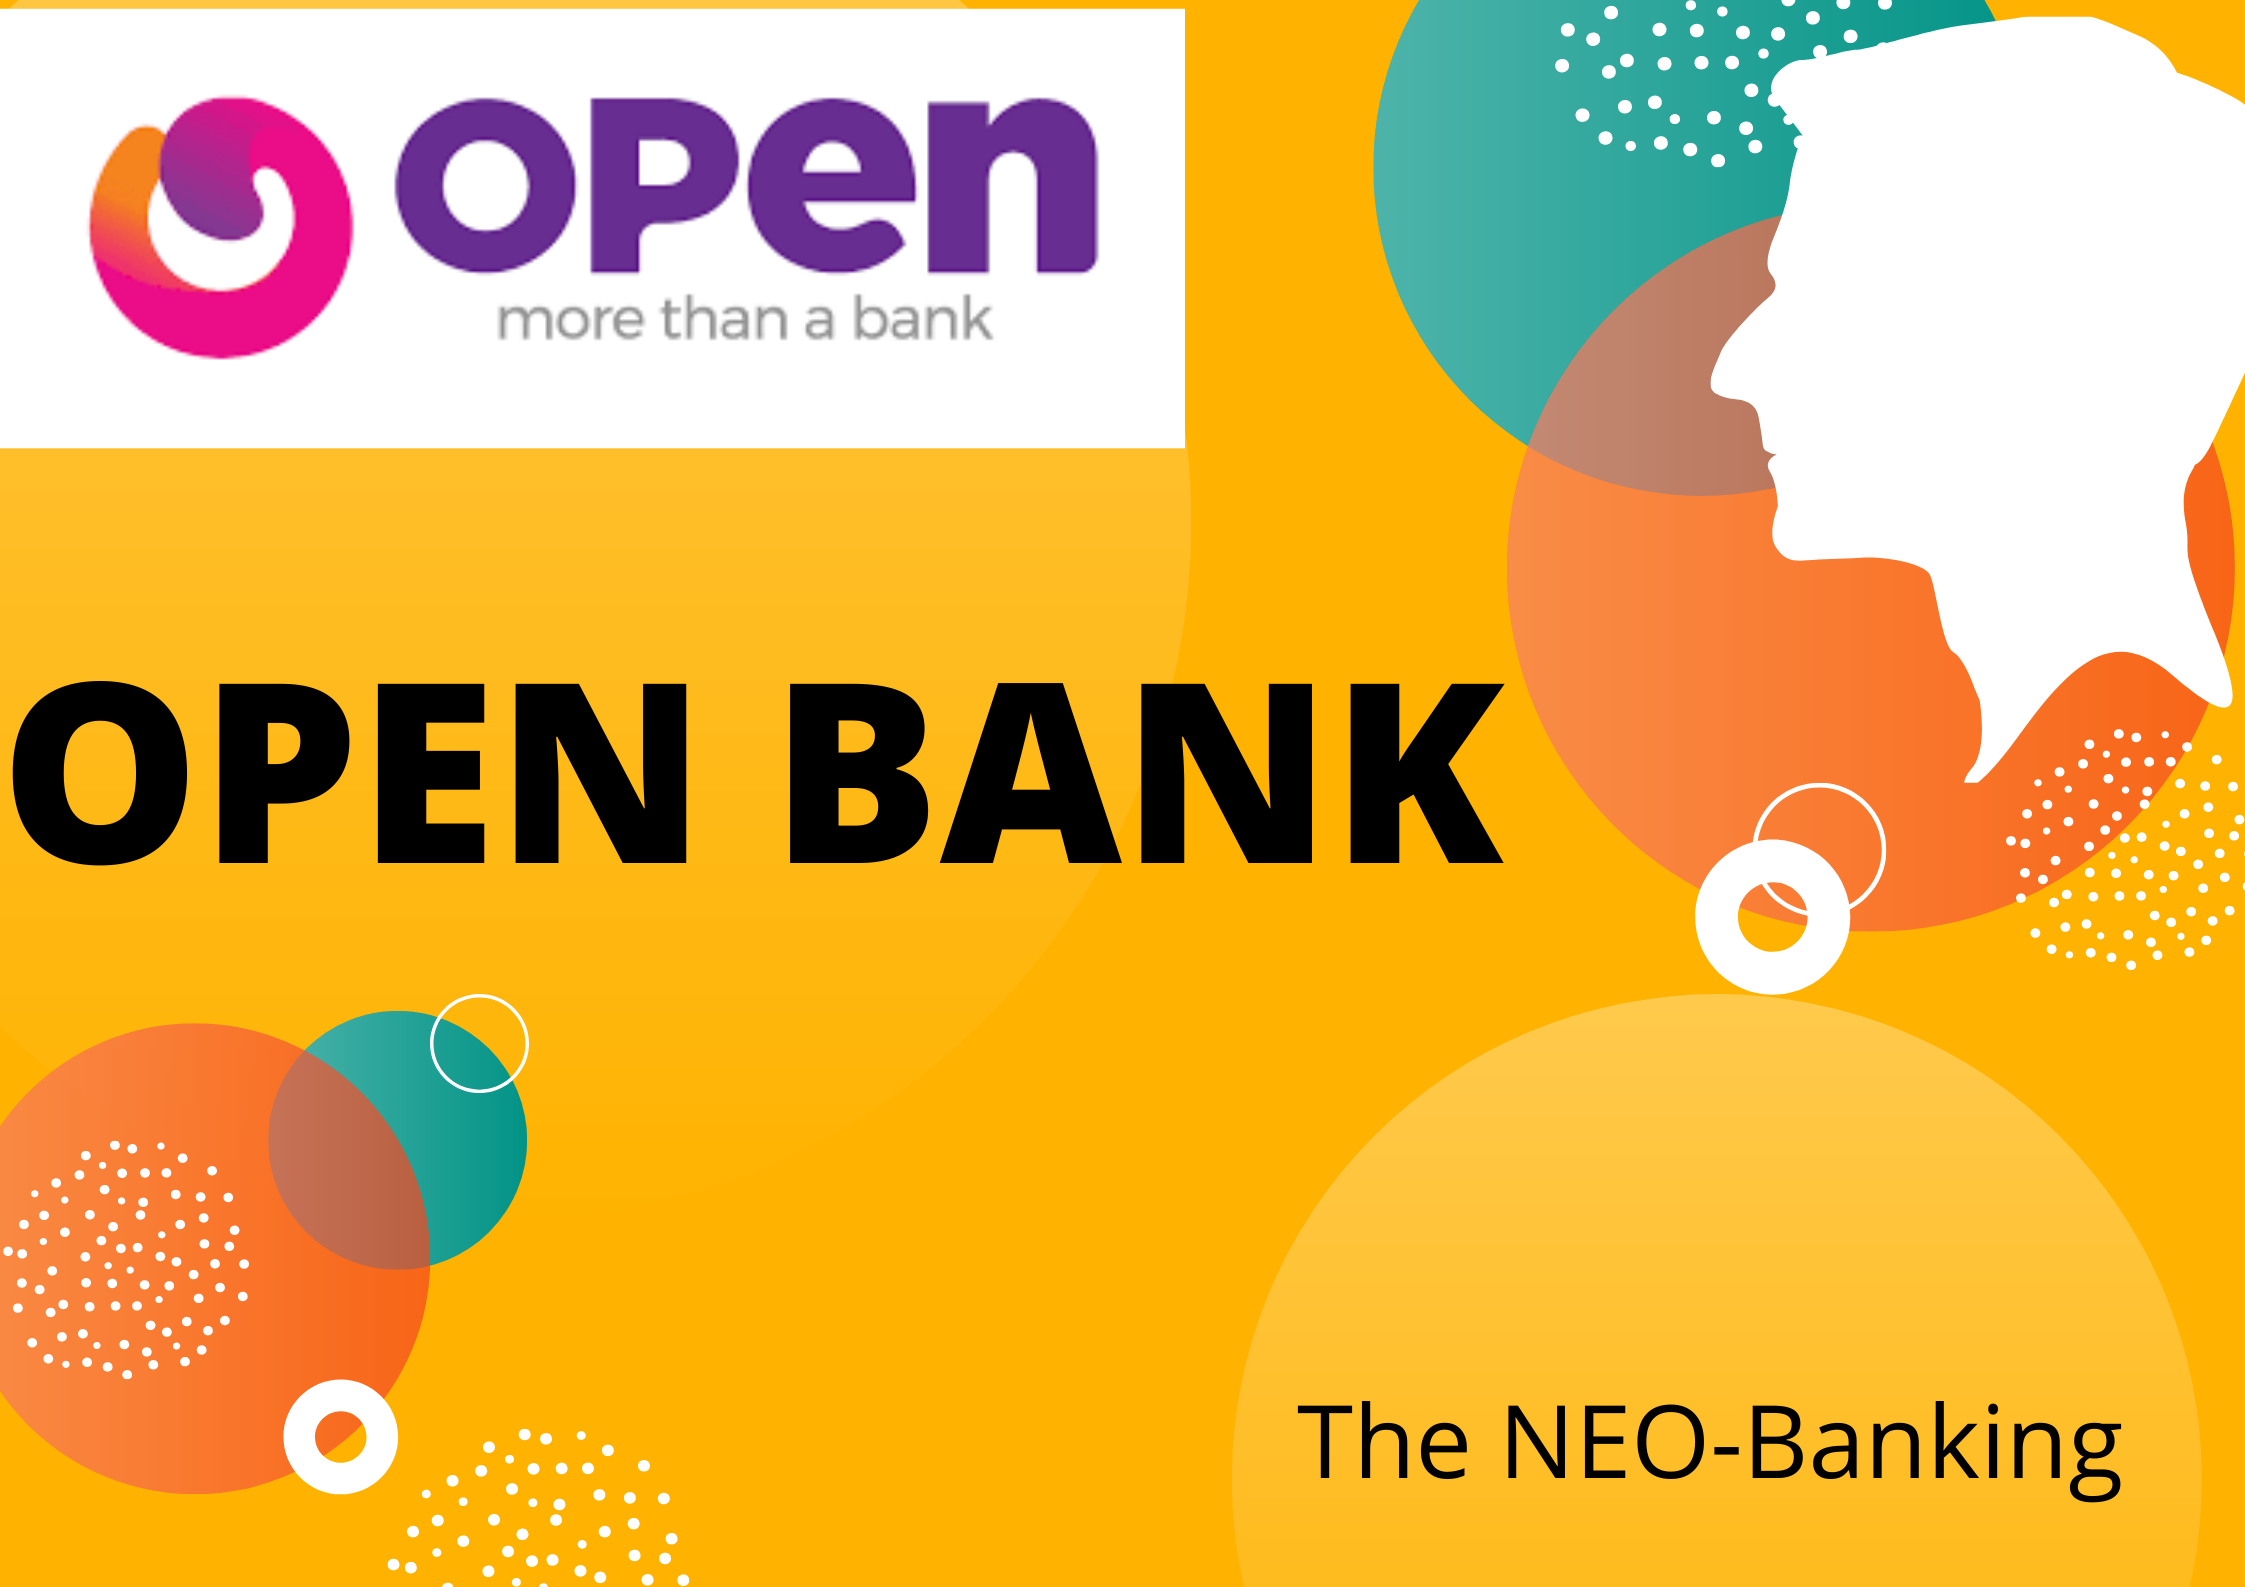 OPEN Bank: Everything you need to know